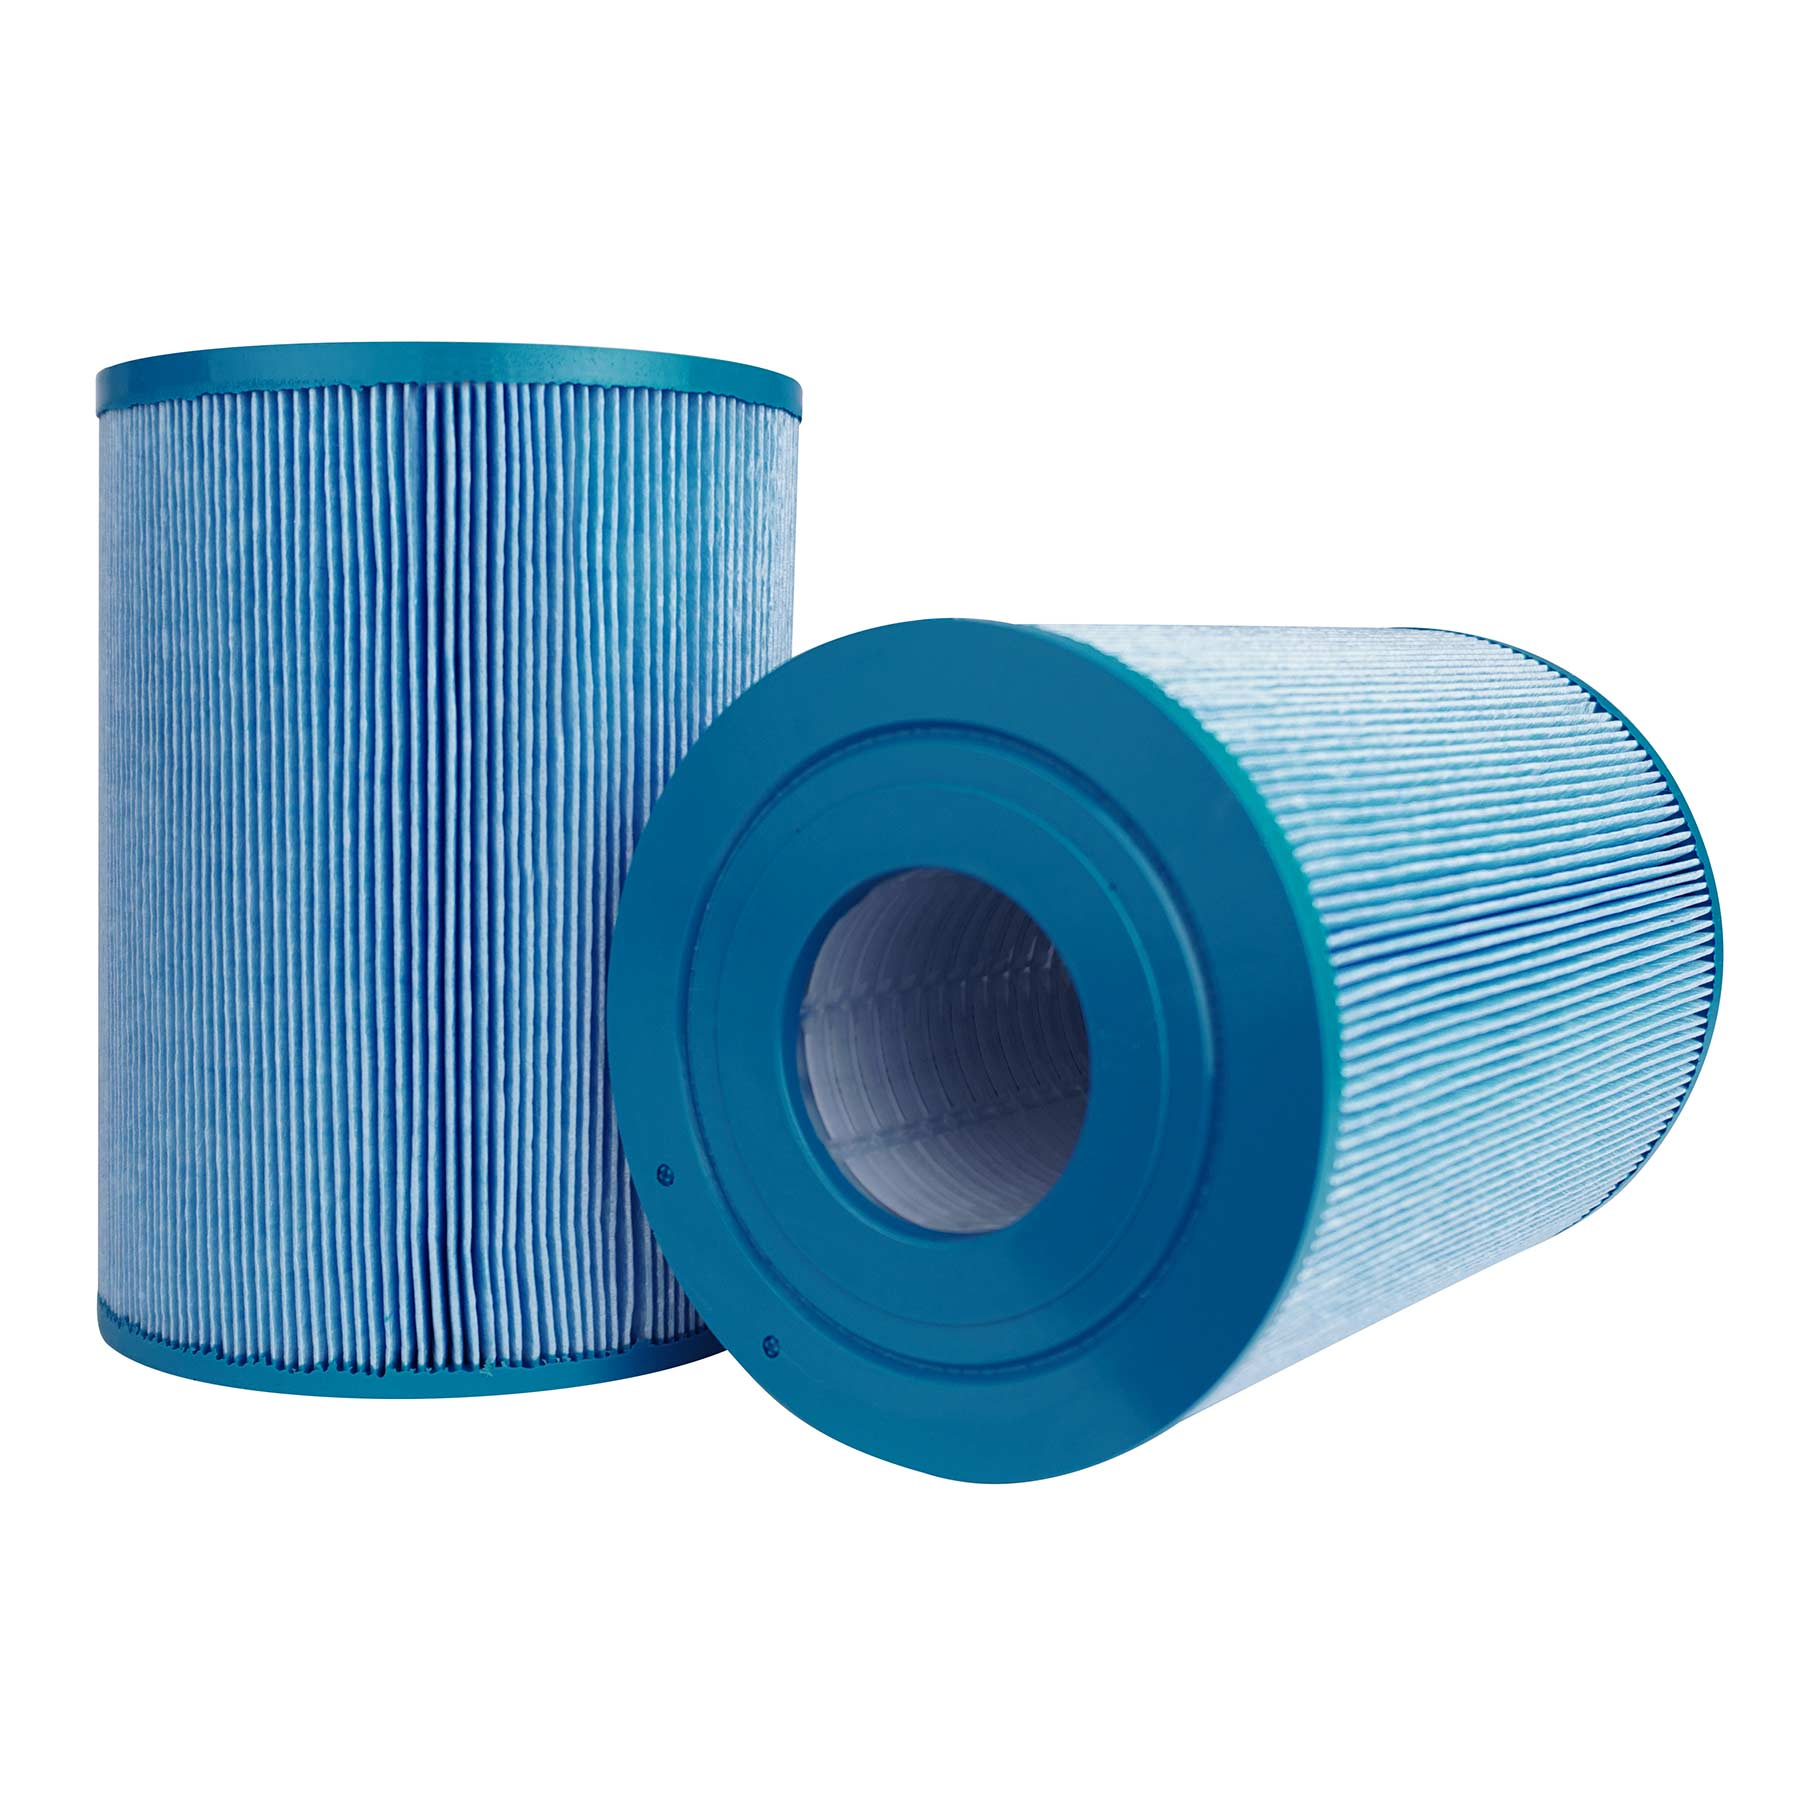 Replaces Unicel 4405RA, Pleatco PRB25SF-M,Pool & Spa Filter Cartridge-Filter Cartridge-FilterDeal.com